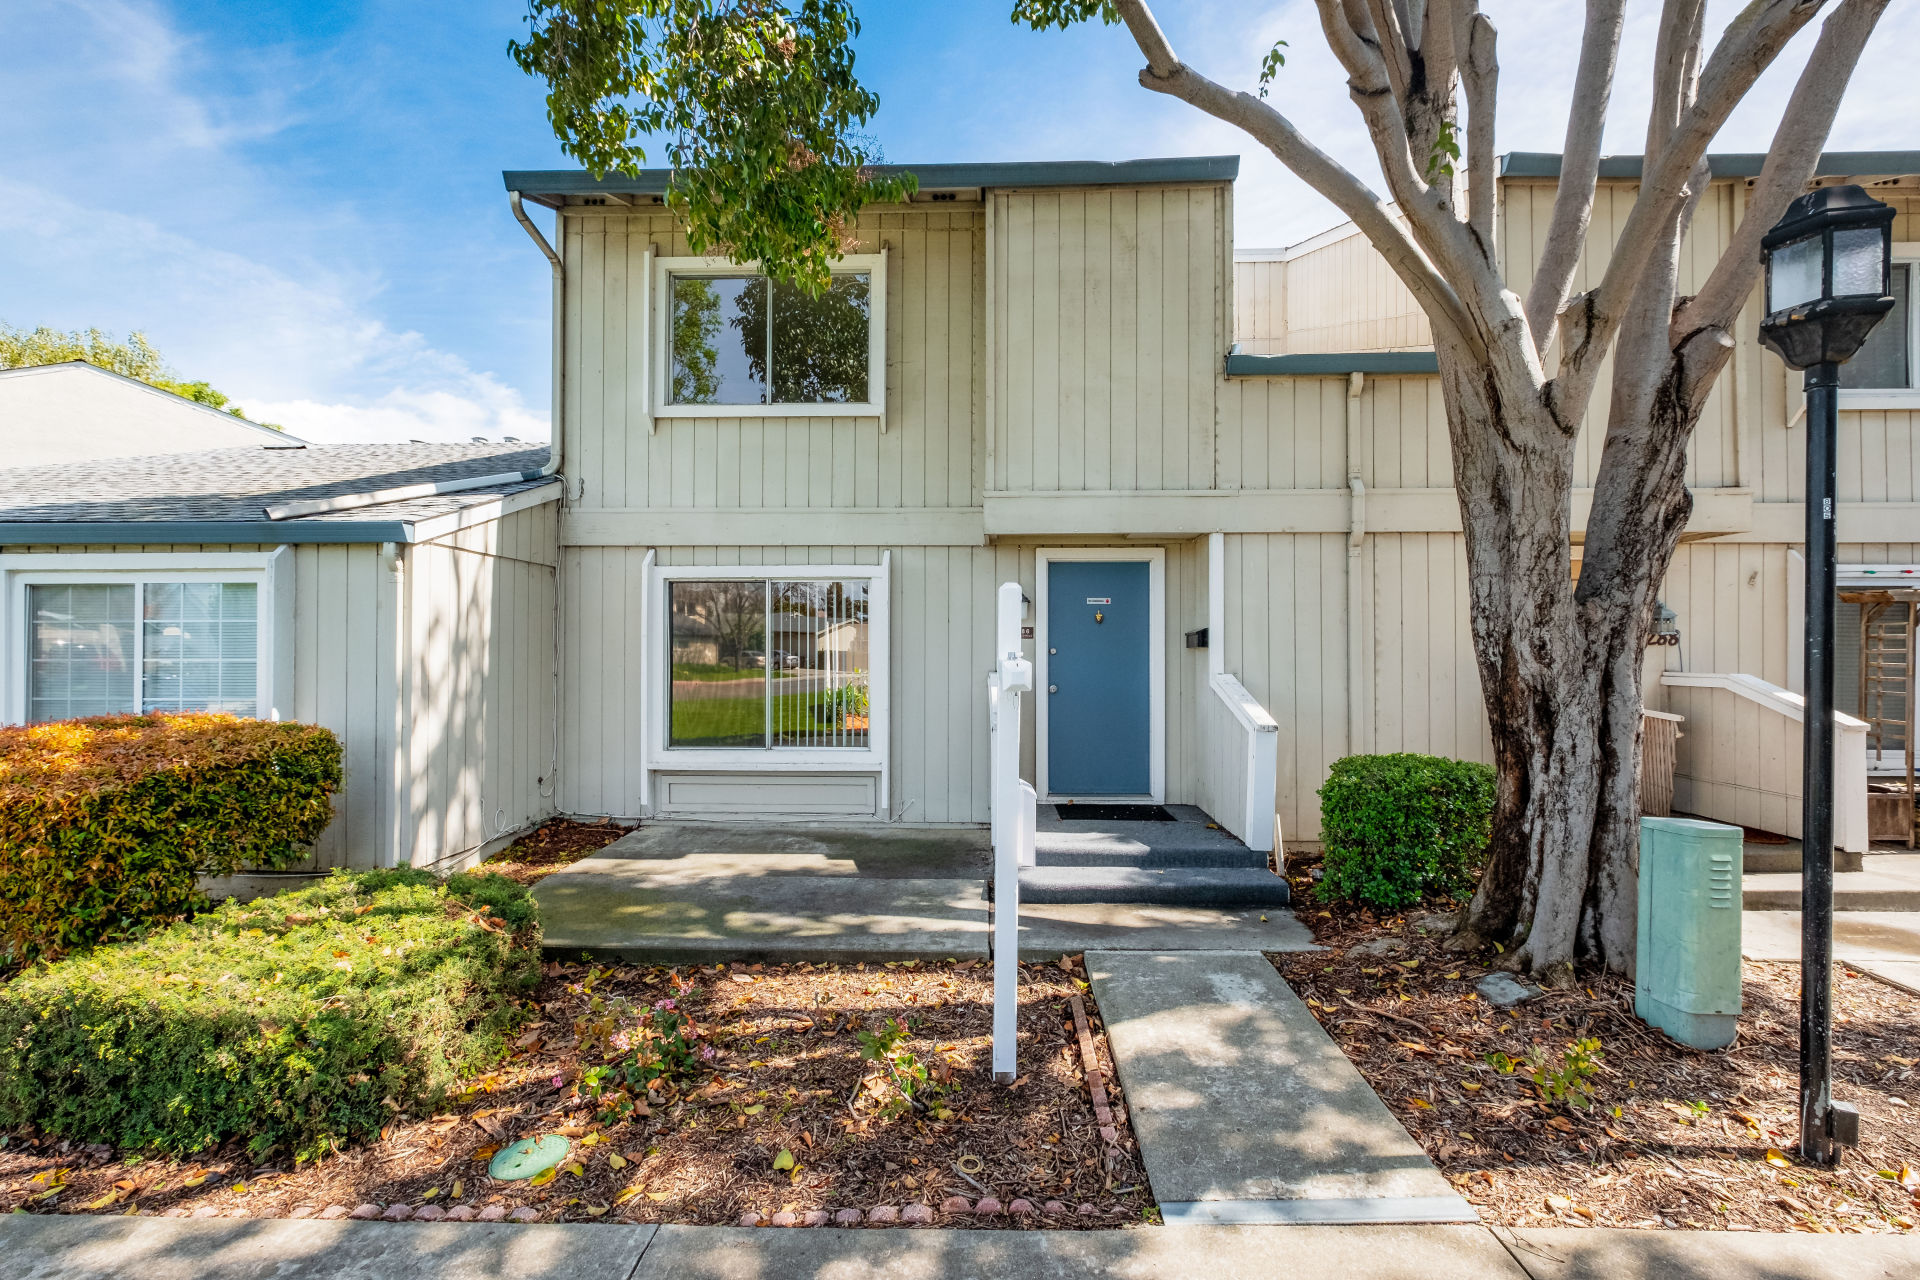 New Listing in Union City